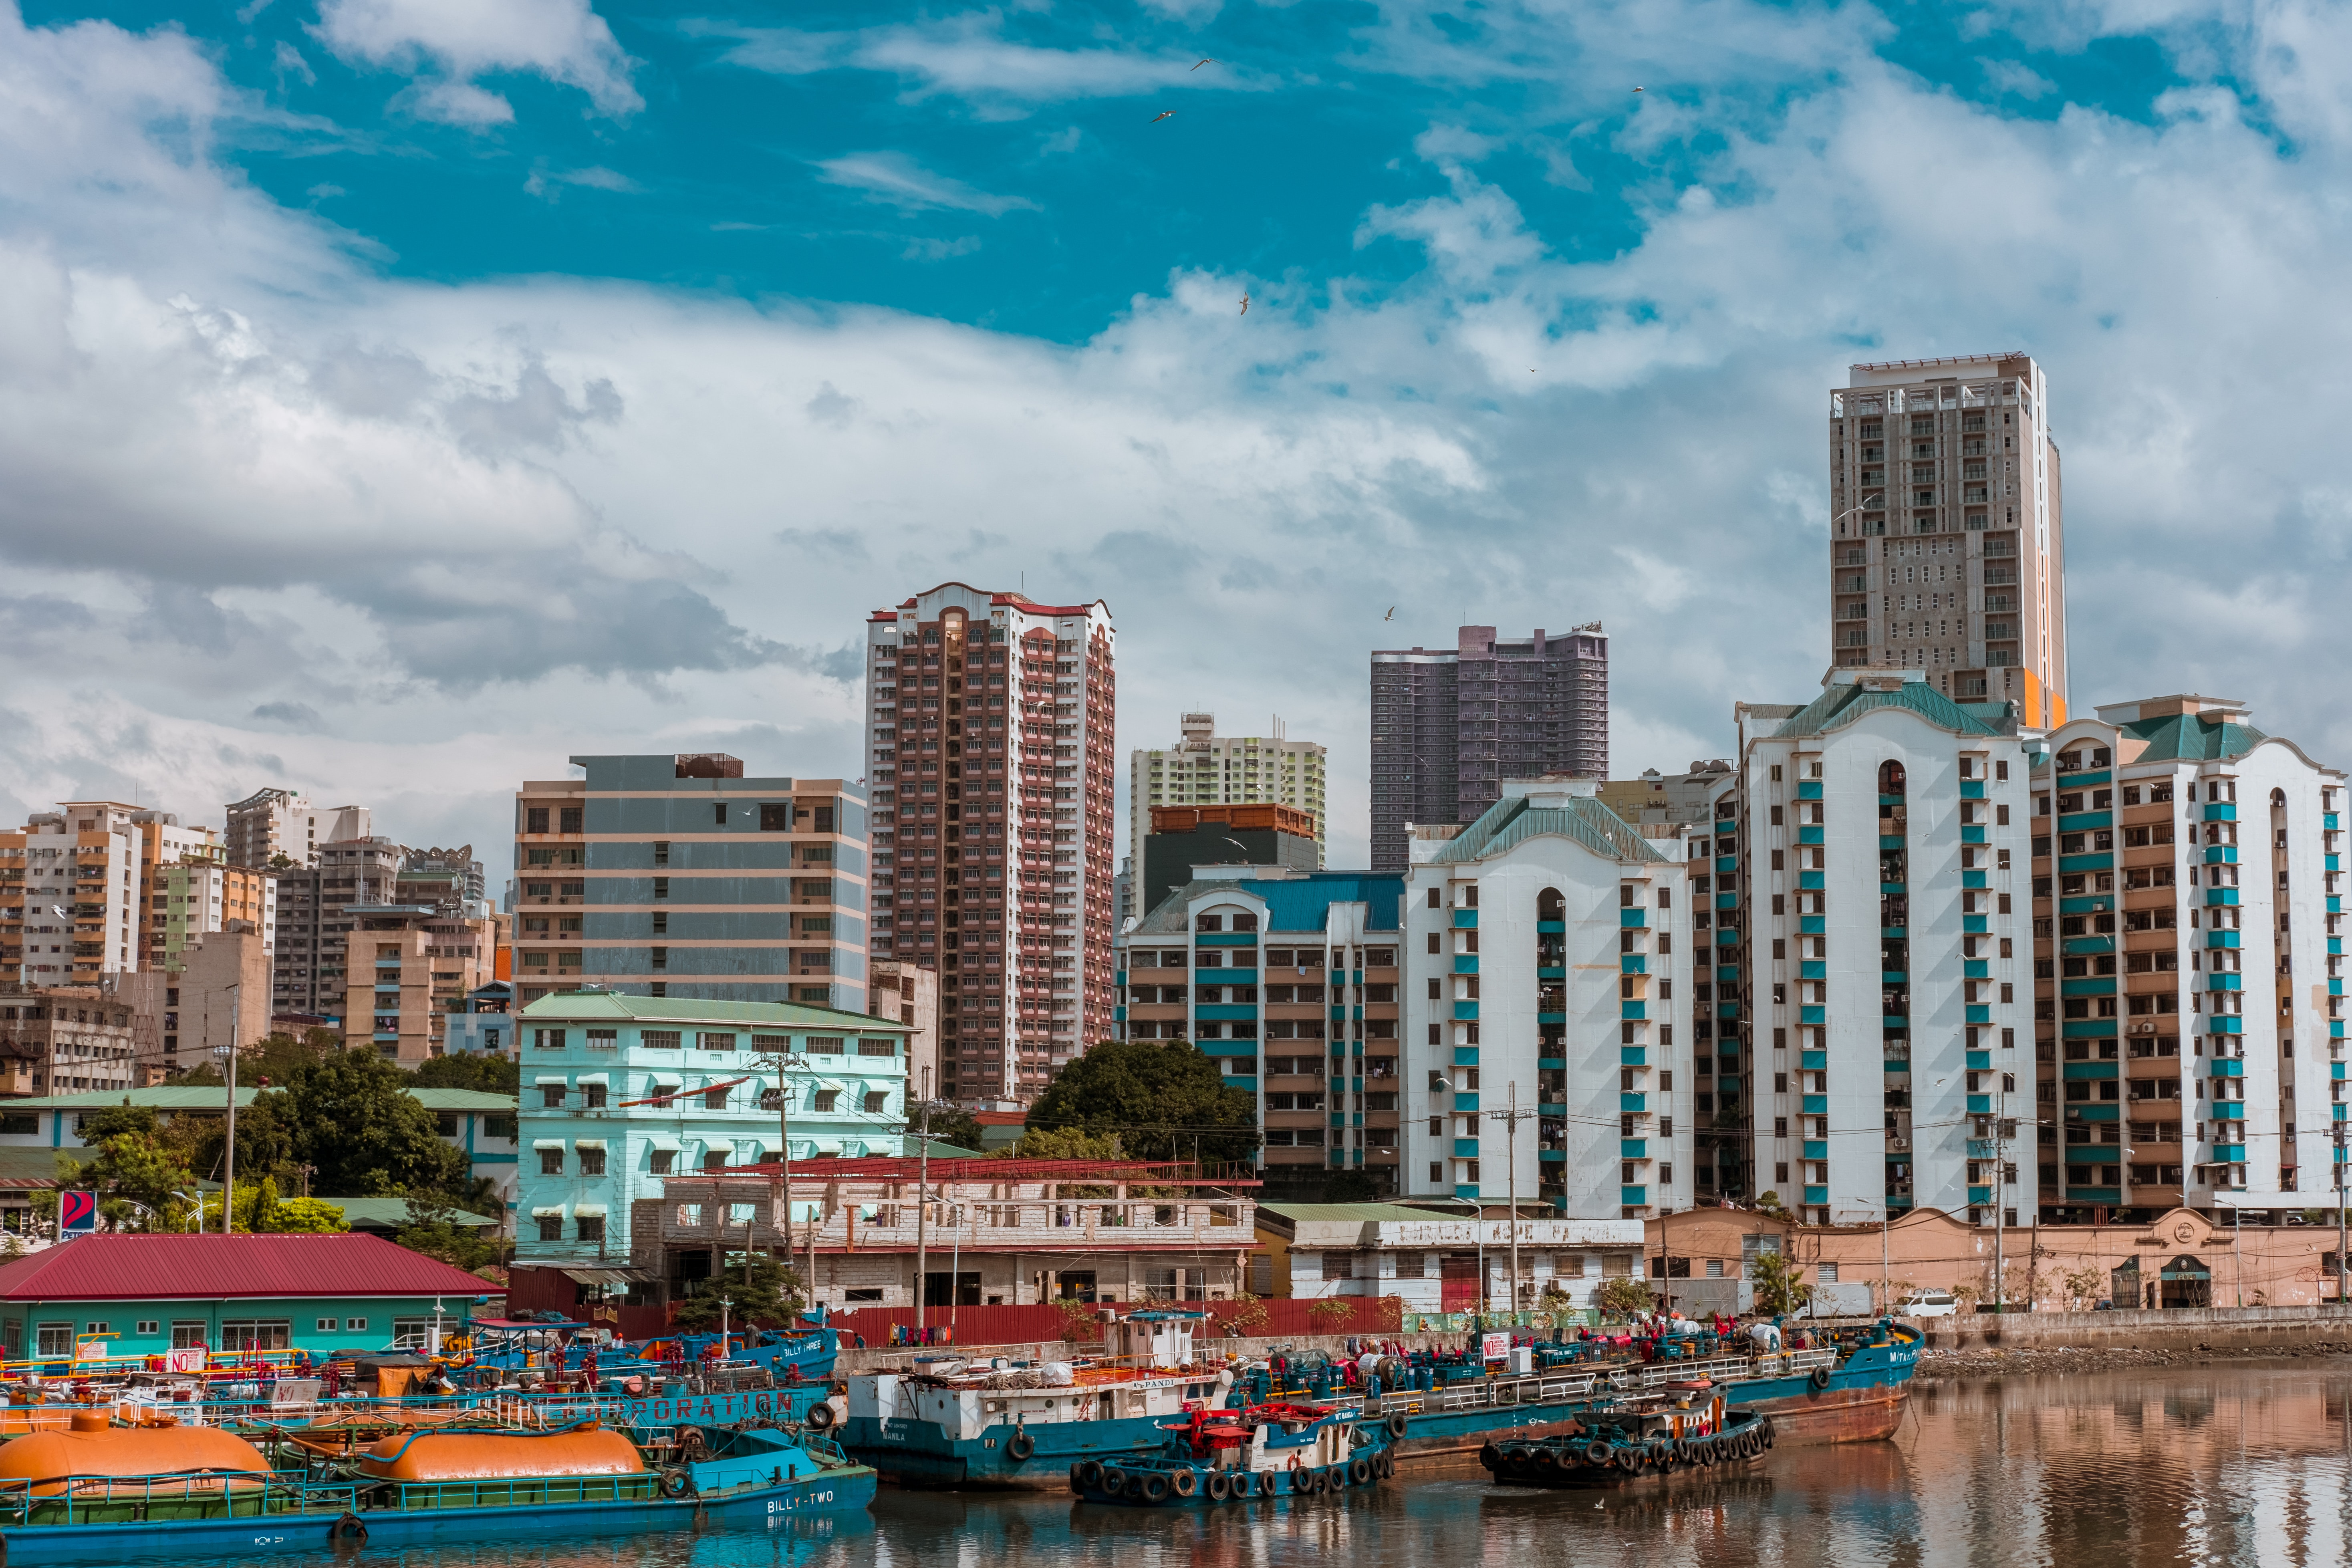 Waterfront view featuring boats and office buildings in Manila.